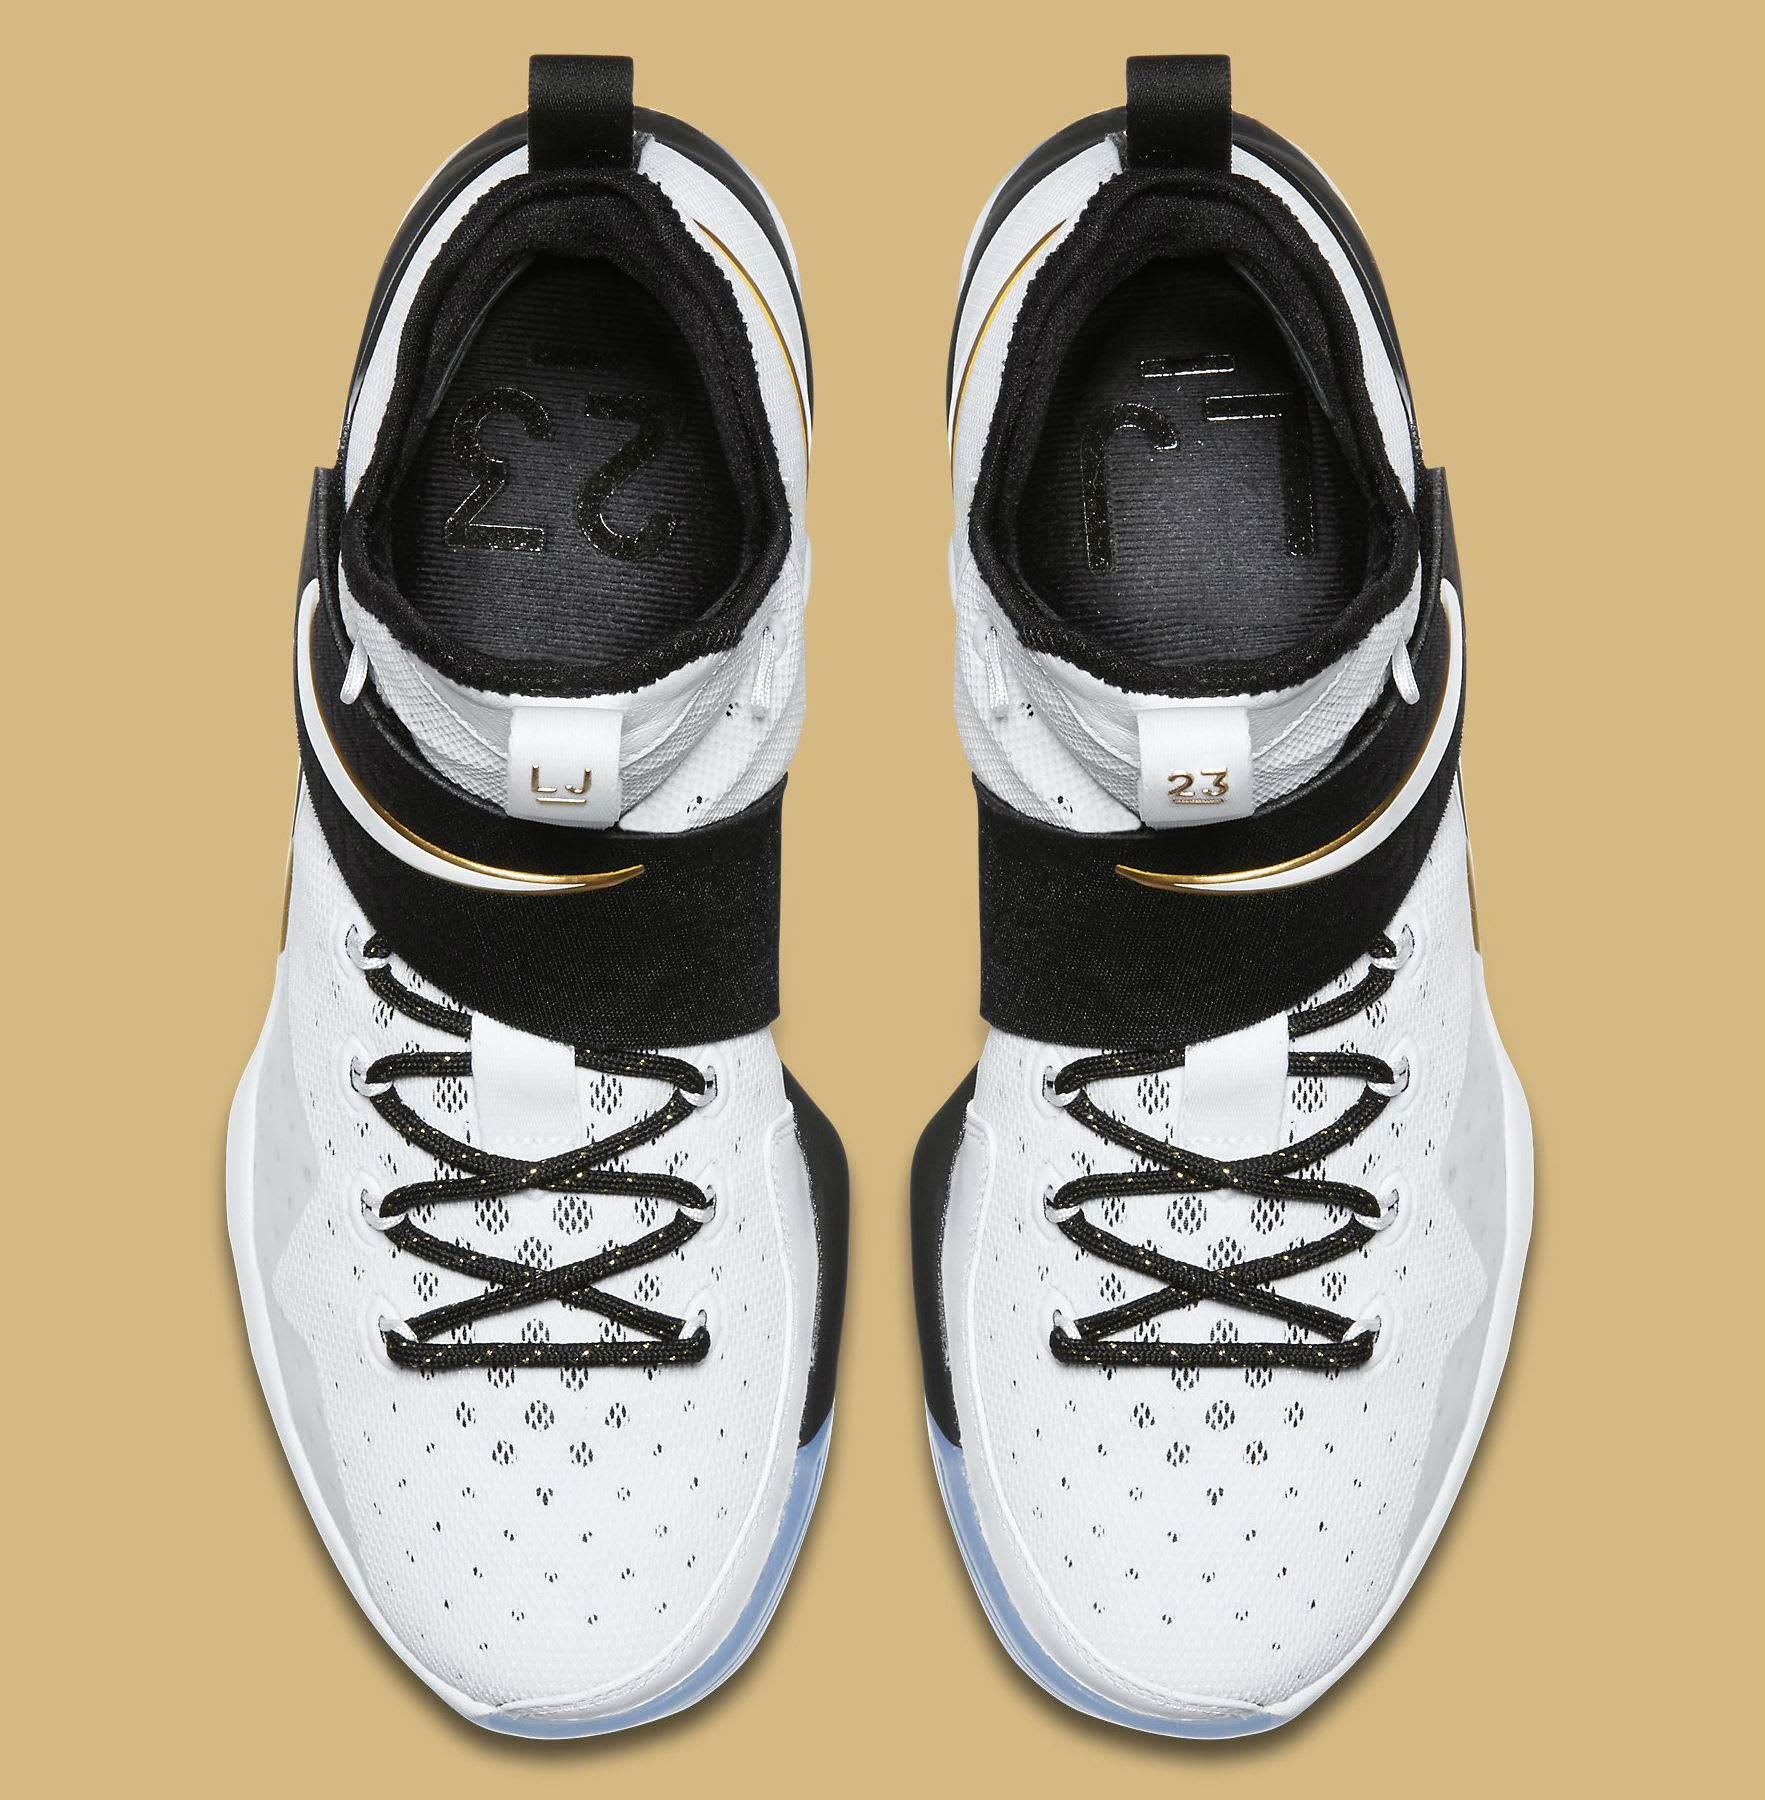 d1d4f9a1d4b3 ... where to buy nike lebron 14 bhm release date top 860634 100 a10c7 28fcb